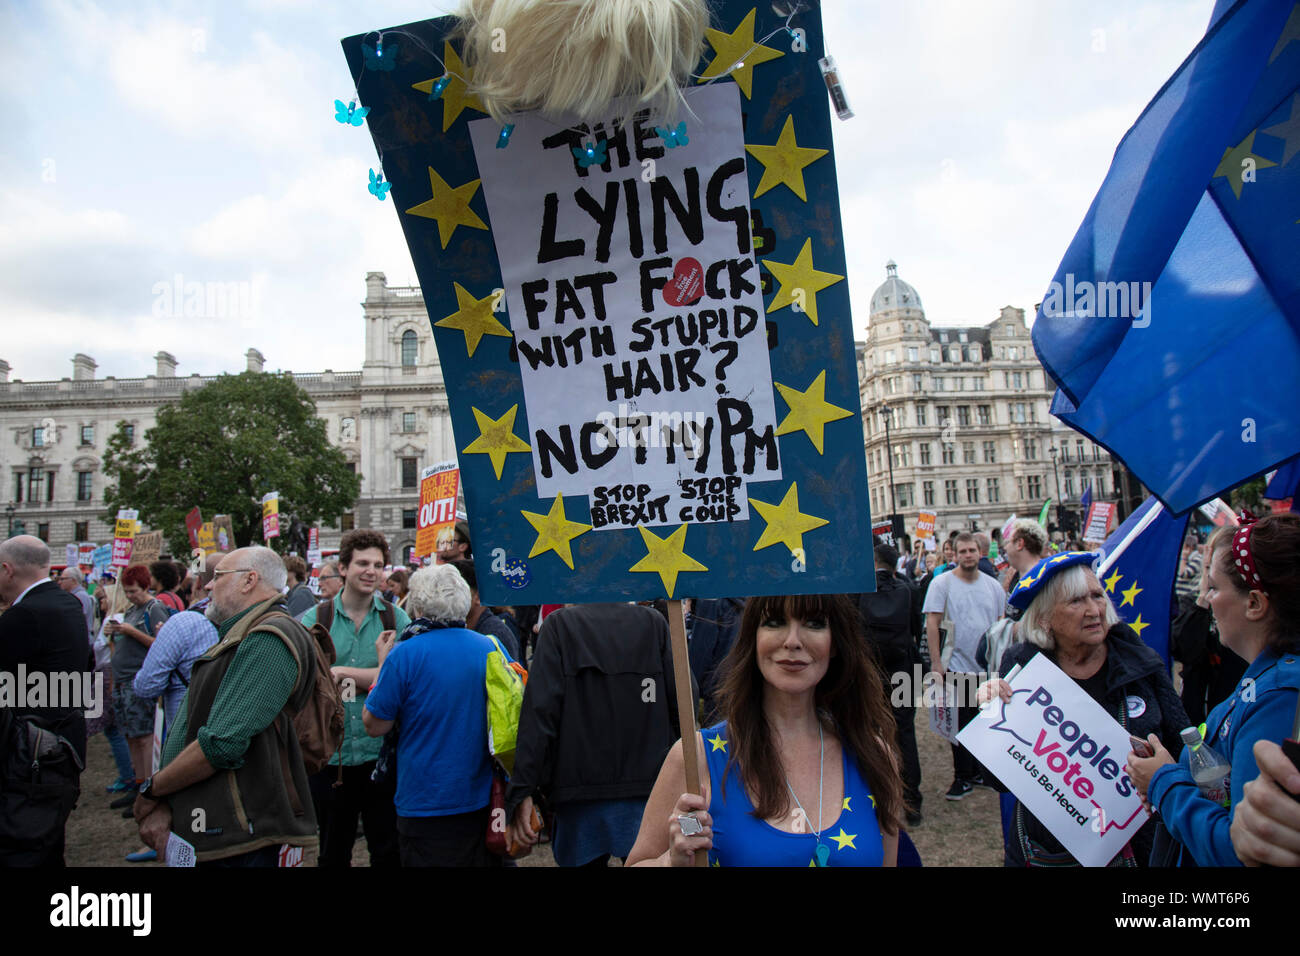 Anti Brexit protesters with messages against Boris Johnson and the Tory government to Stop Brexit, Stop the Coup and Pro Democracy at a demonstration organised by Peoples Vote in Westminster on the day that Parliament reconvenes after summer recess to debate and vote on a bill to prevent the UK leaving the EU without a deal at the end of October, on 3rd September 2019 in London, England, United Kingdom. Today Prime Minister Boris Johnson will face a showdown after he threatened rebel Conservative MPs who vote against him with deselection, and vowed to aim for a snap general election if MPs suc - Stock Photo